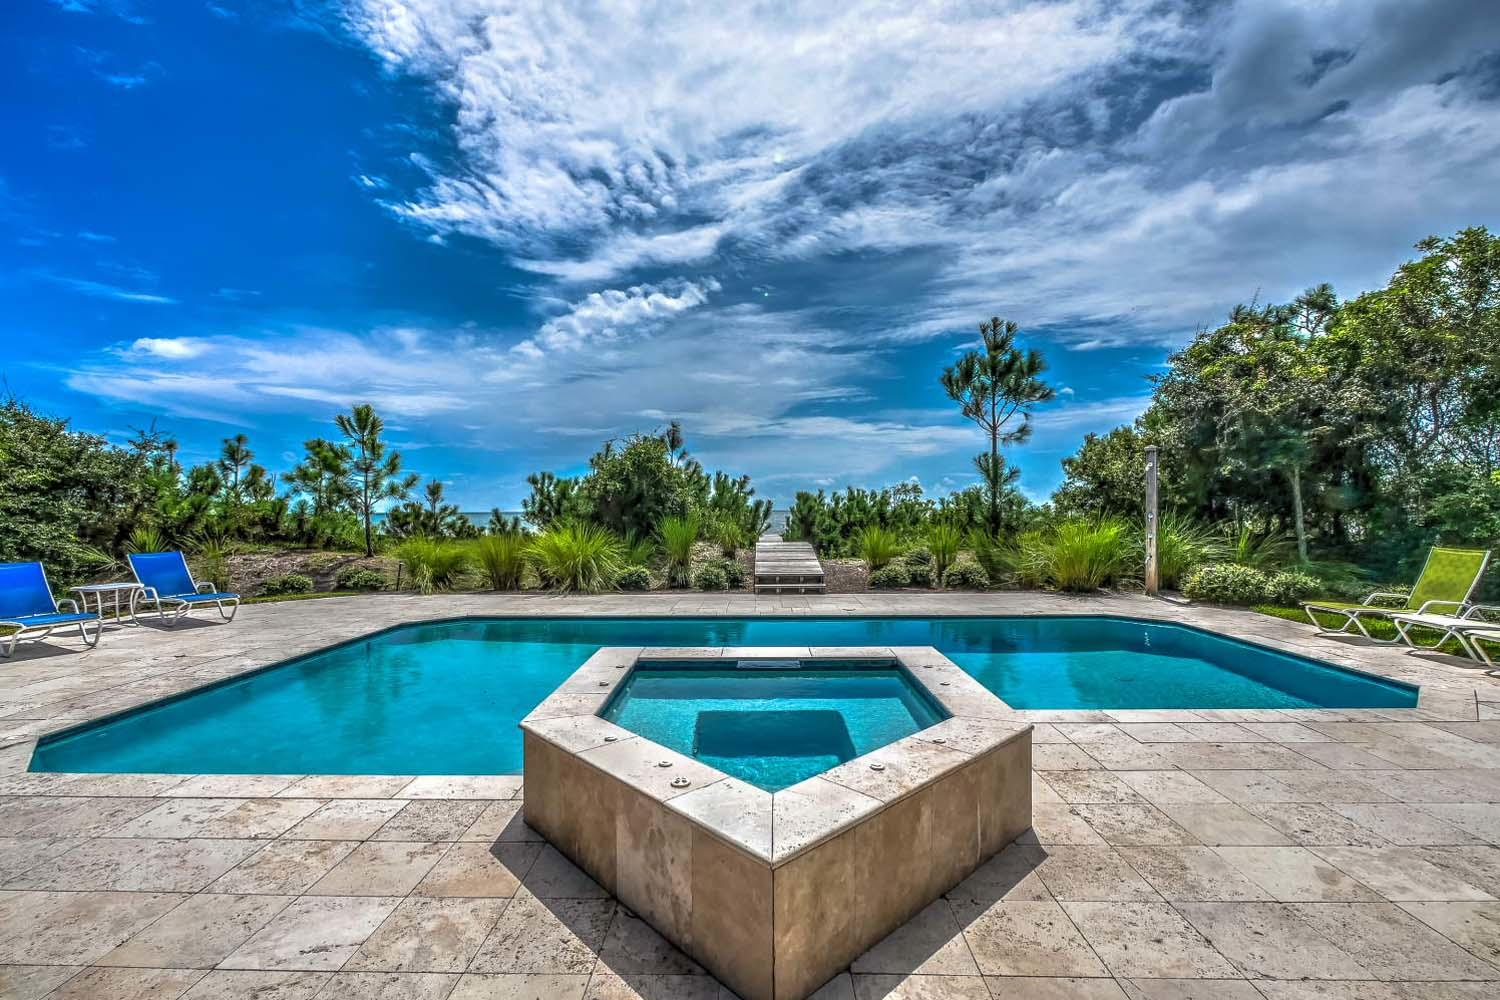 Pool Area Overlooking Ocean